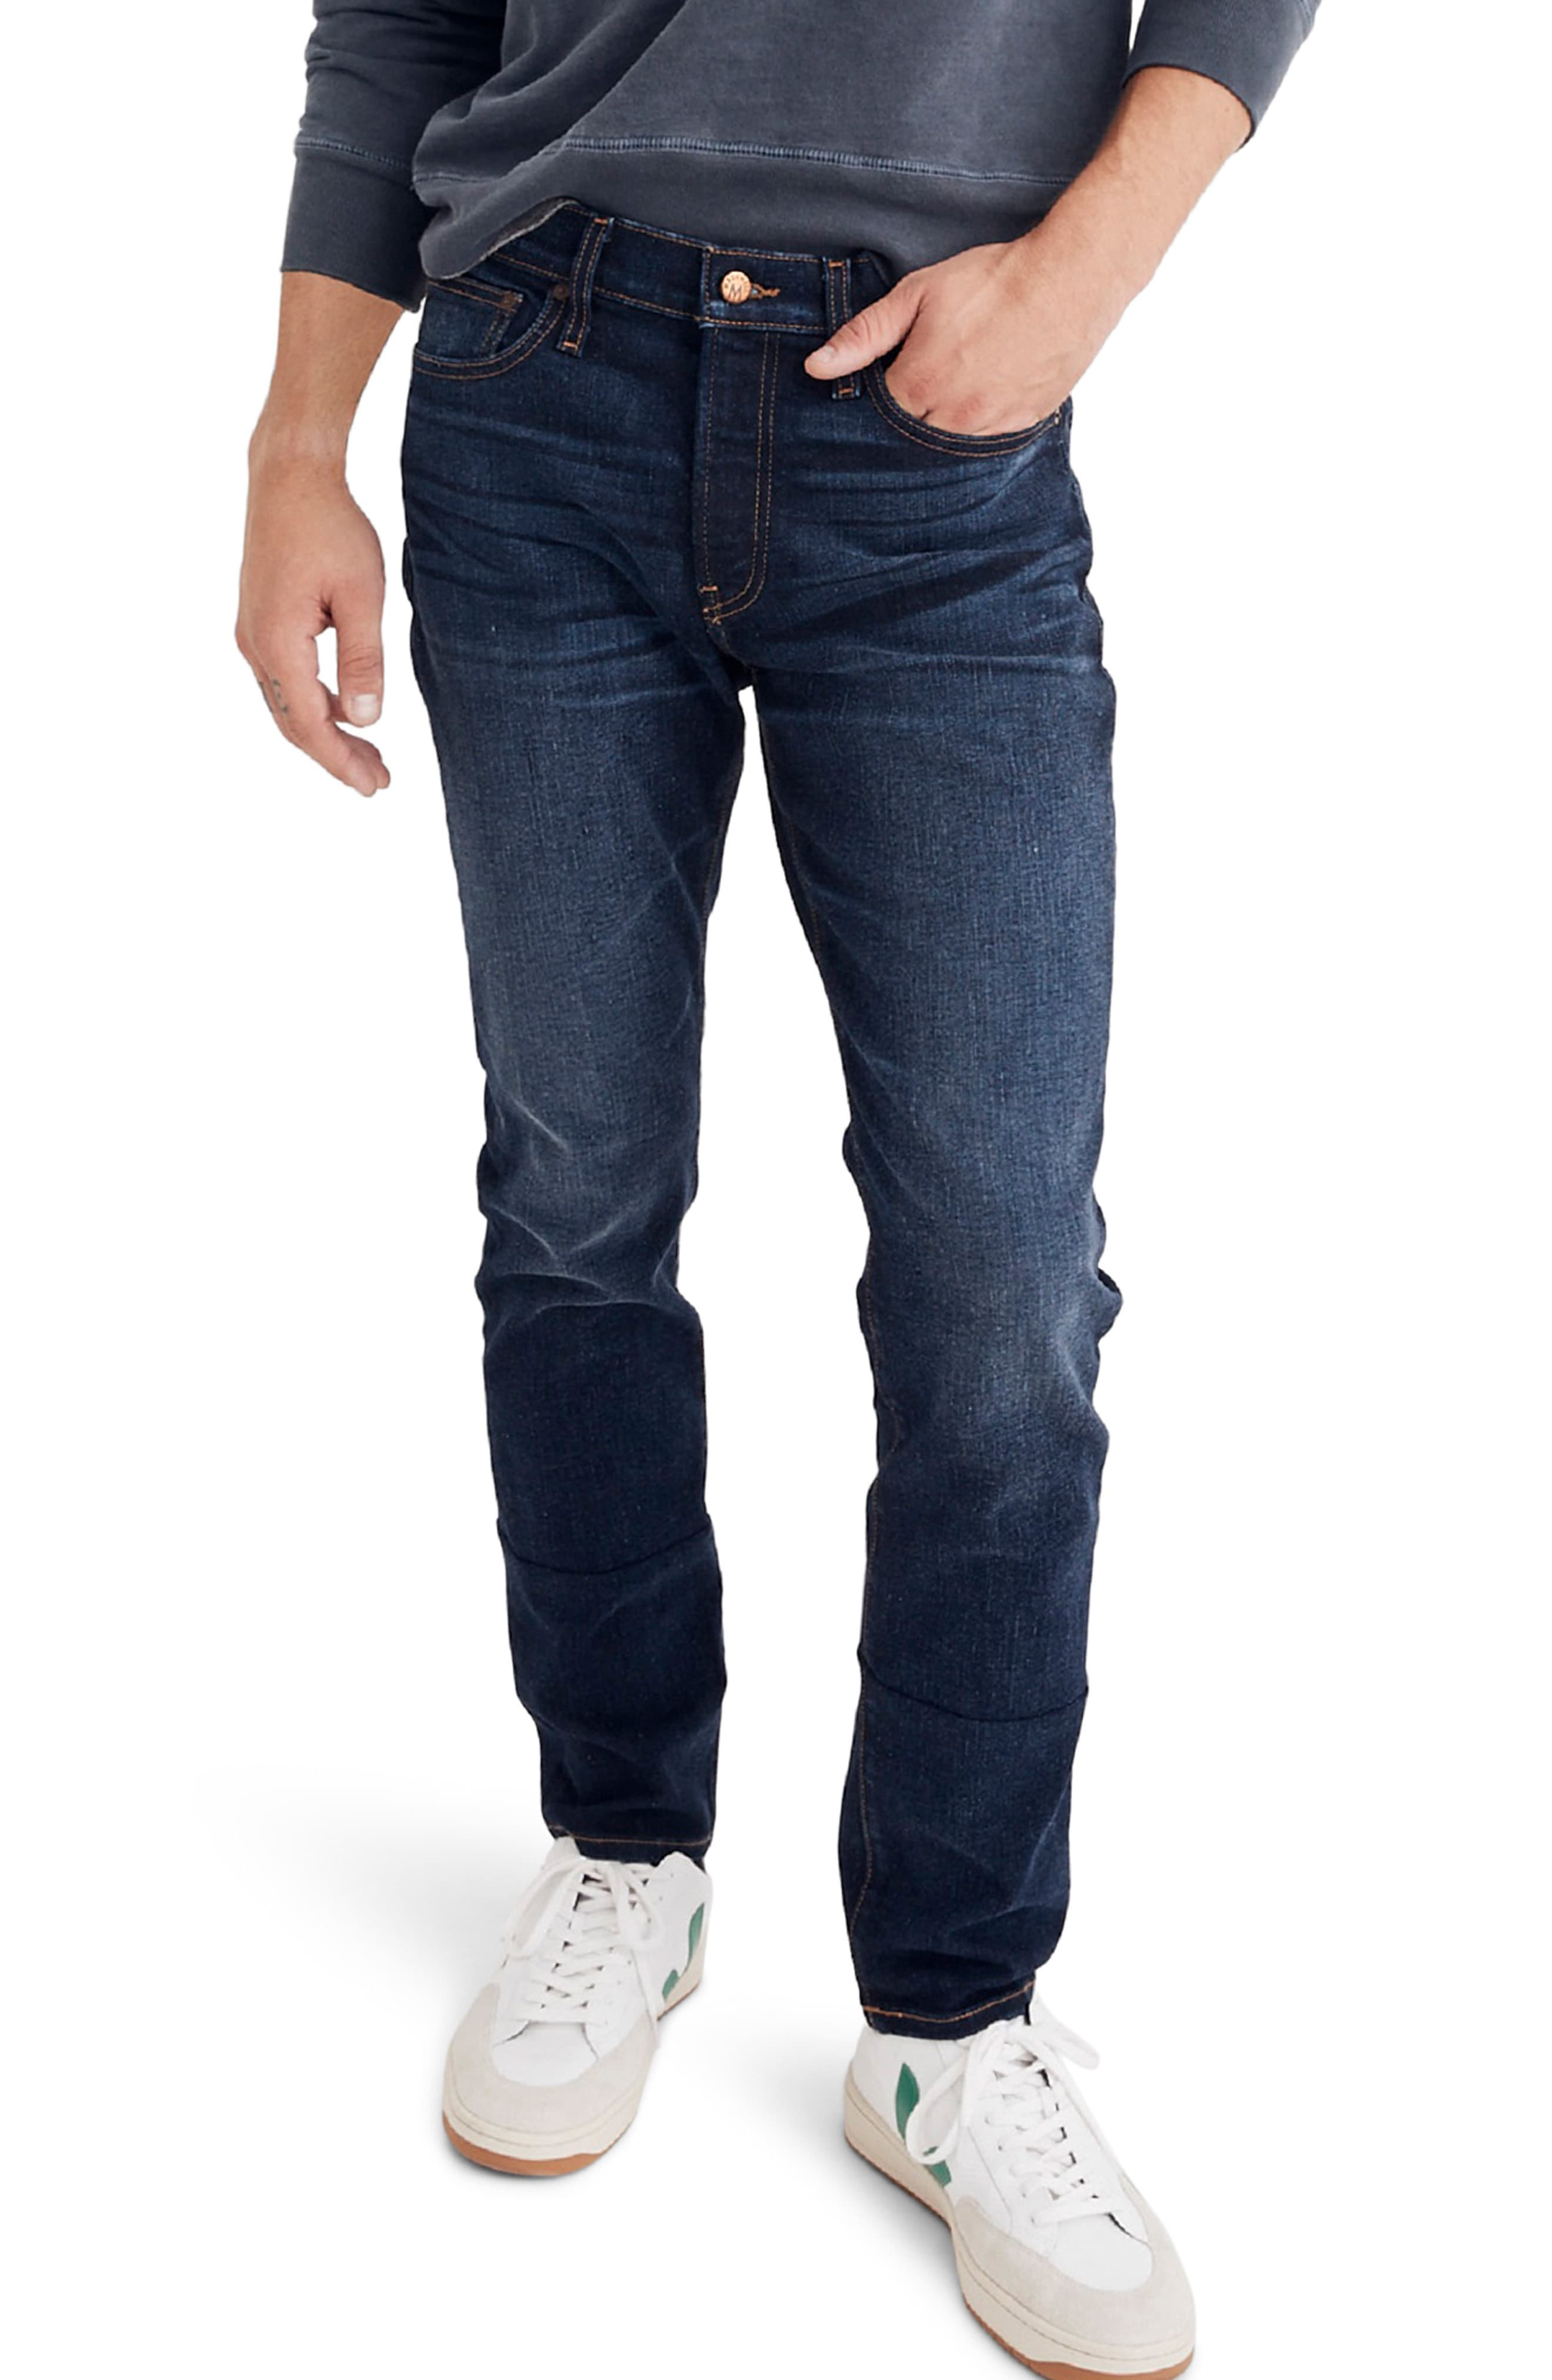 Men's Madewell Slim Fit Jeans, Size 29 x 30 - Blue